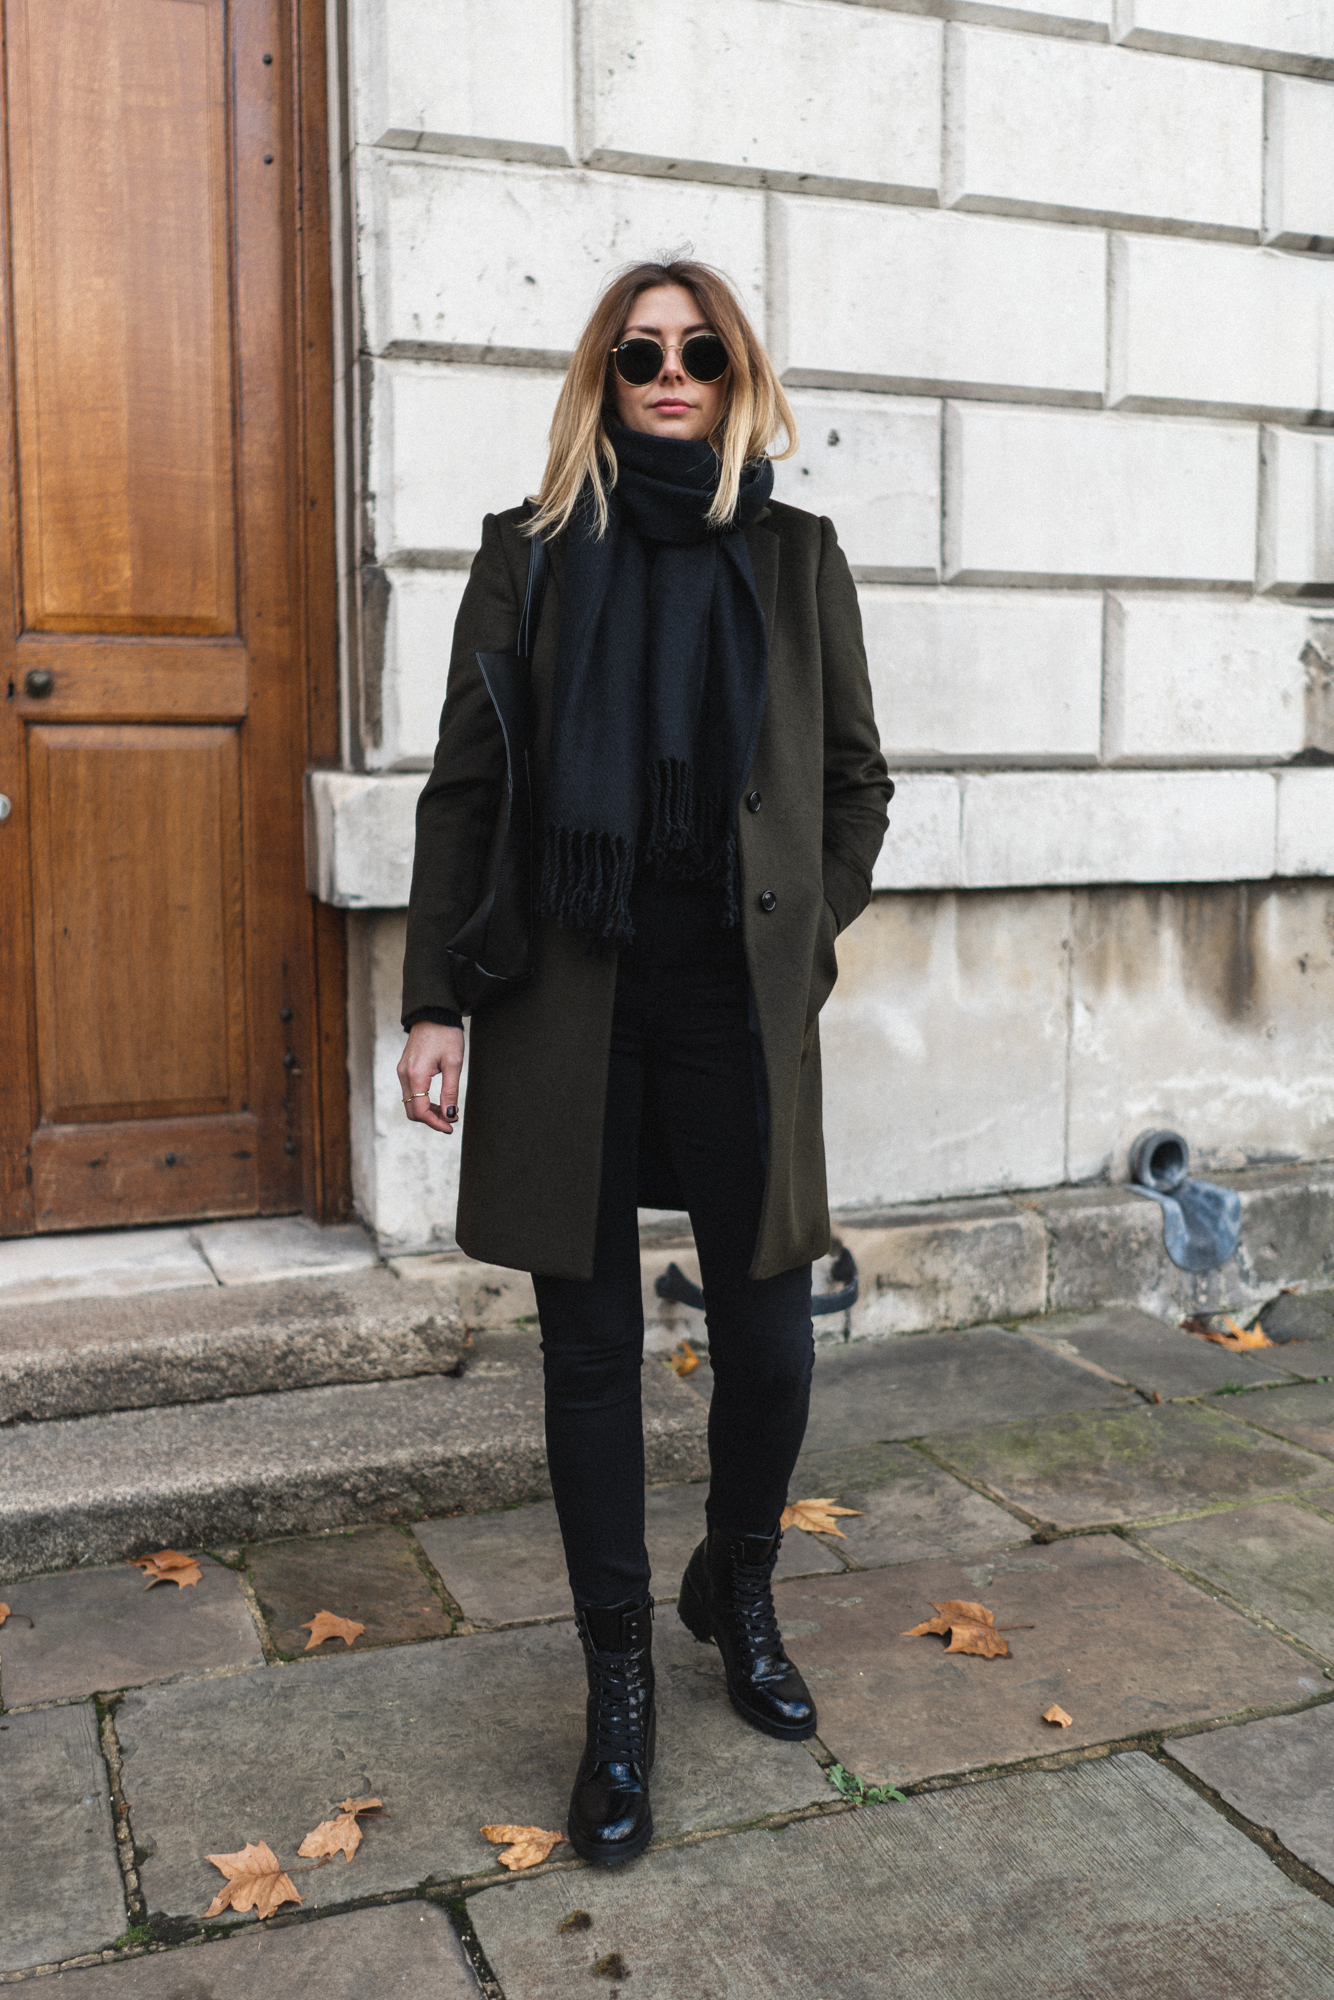 Emma Hill wears dark green wool coat, black scarf, skinny jeans, lace up boots, chic winter outfit